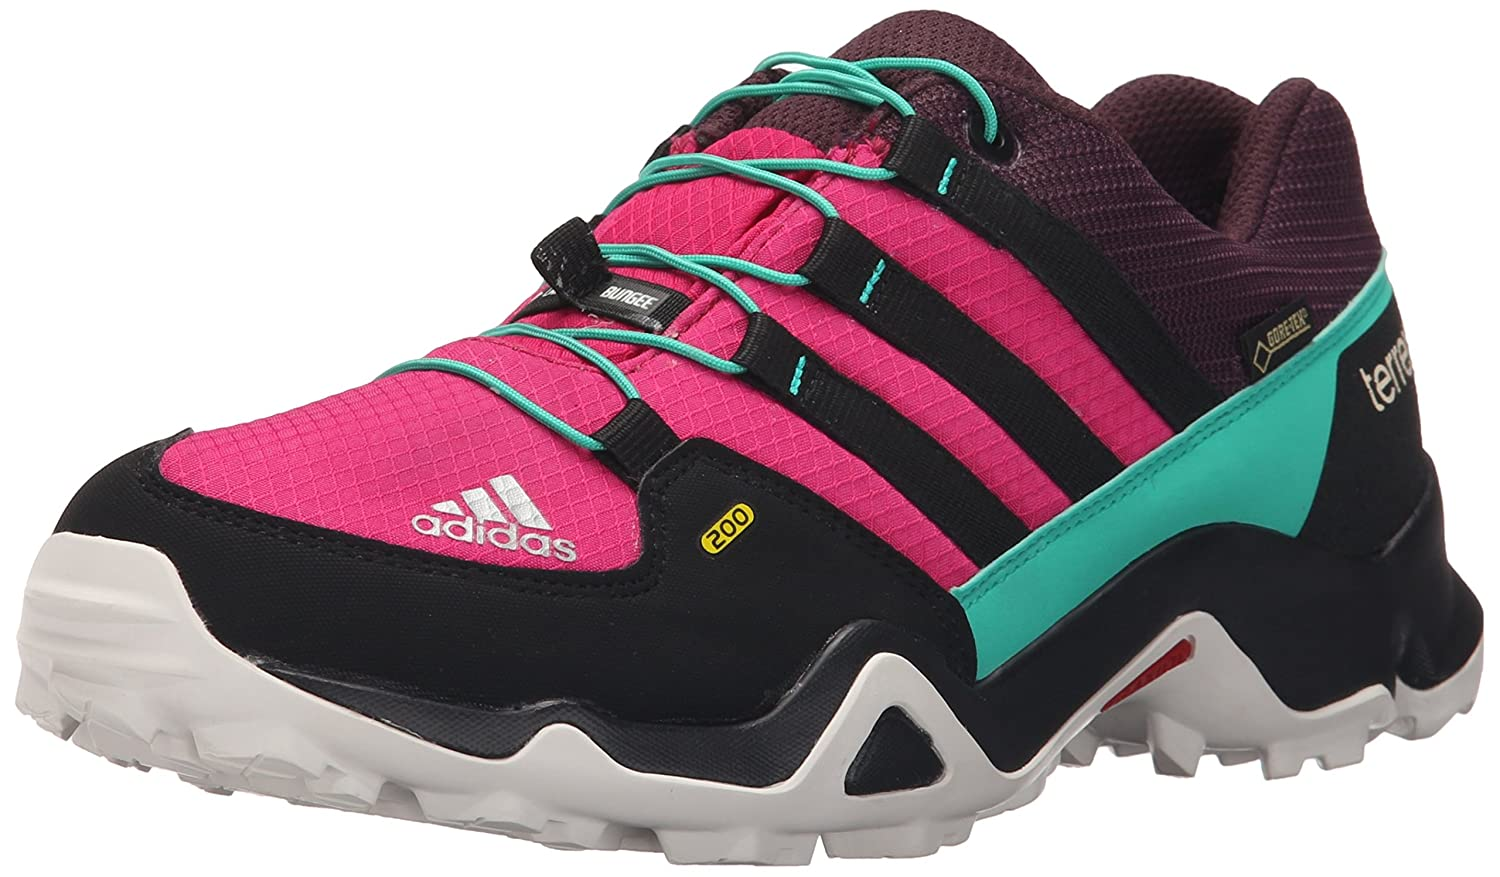 adidas outdoor Terrex Gore-Tex Hiking Boot (Little Kid/Big Kid) Bold Pink/Black/Shock Mint 12.5 M US Little Kid Terrex GORE-TEX - K